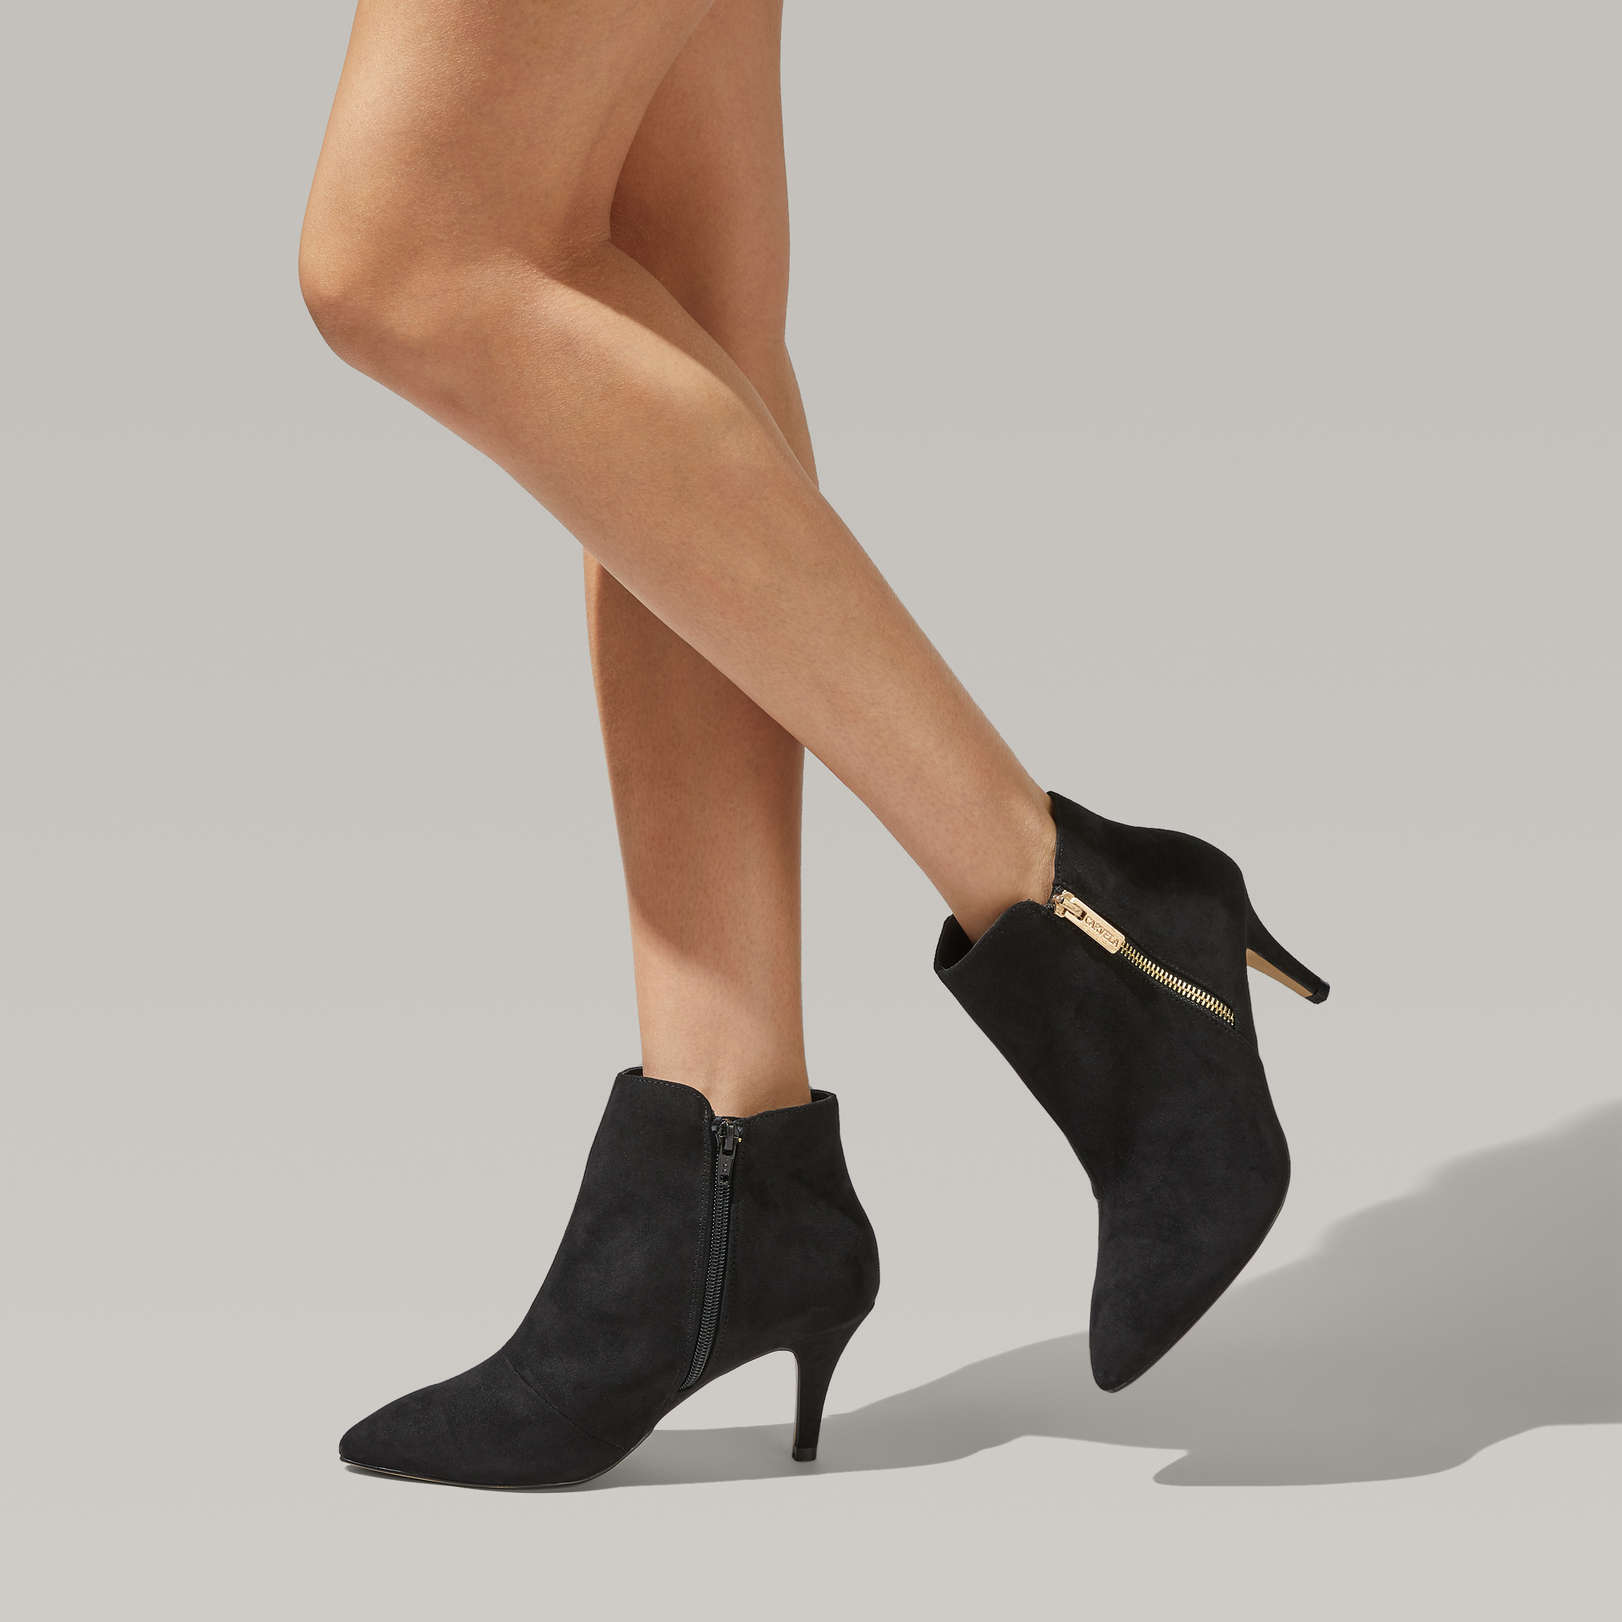 WIDE FIT SPHINX - CARVELA Ankle Boots